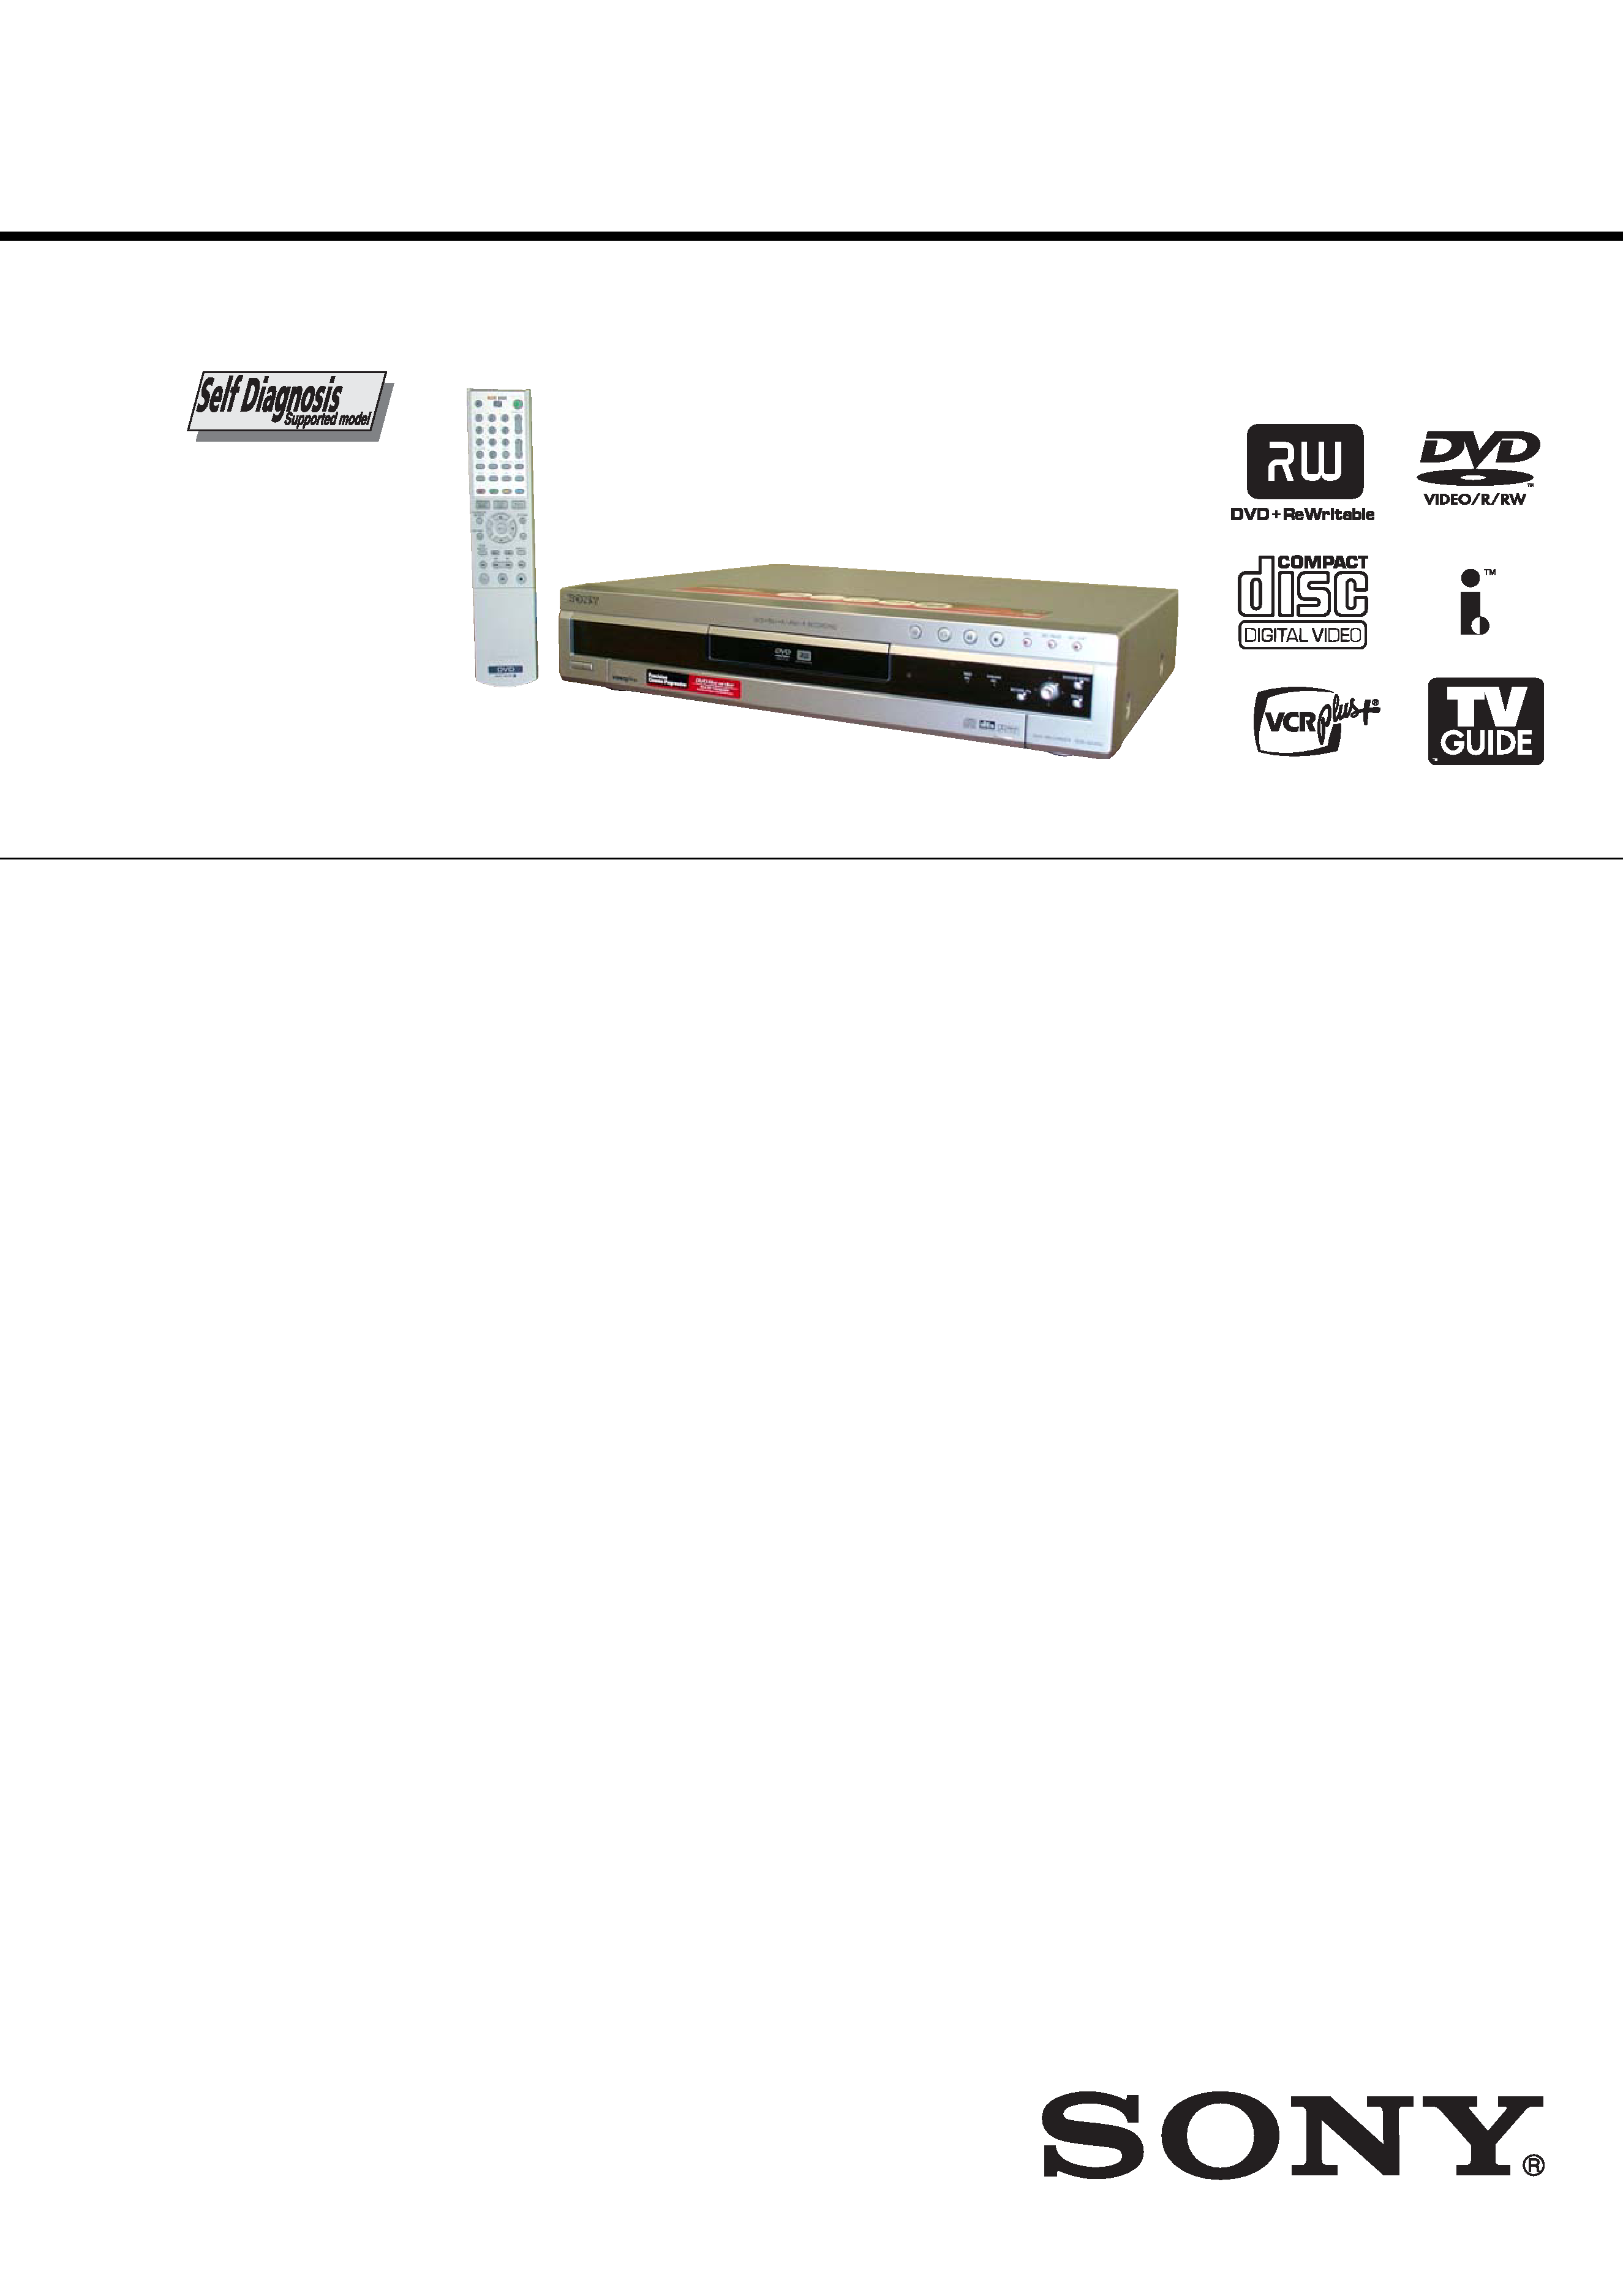 background image. SERVICE MANUAL. DVD RECORDER. SPECIFICATIONS. RDR-HX900